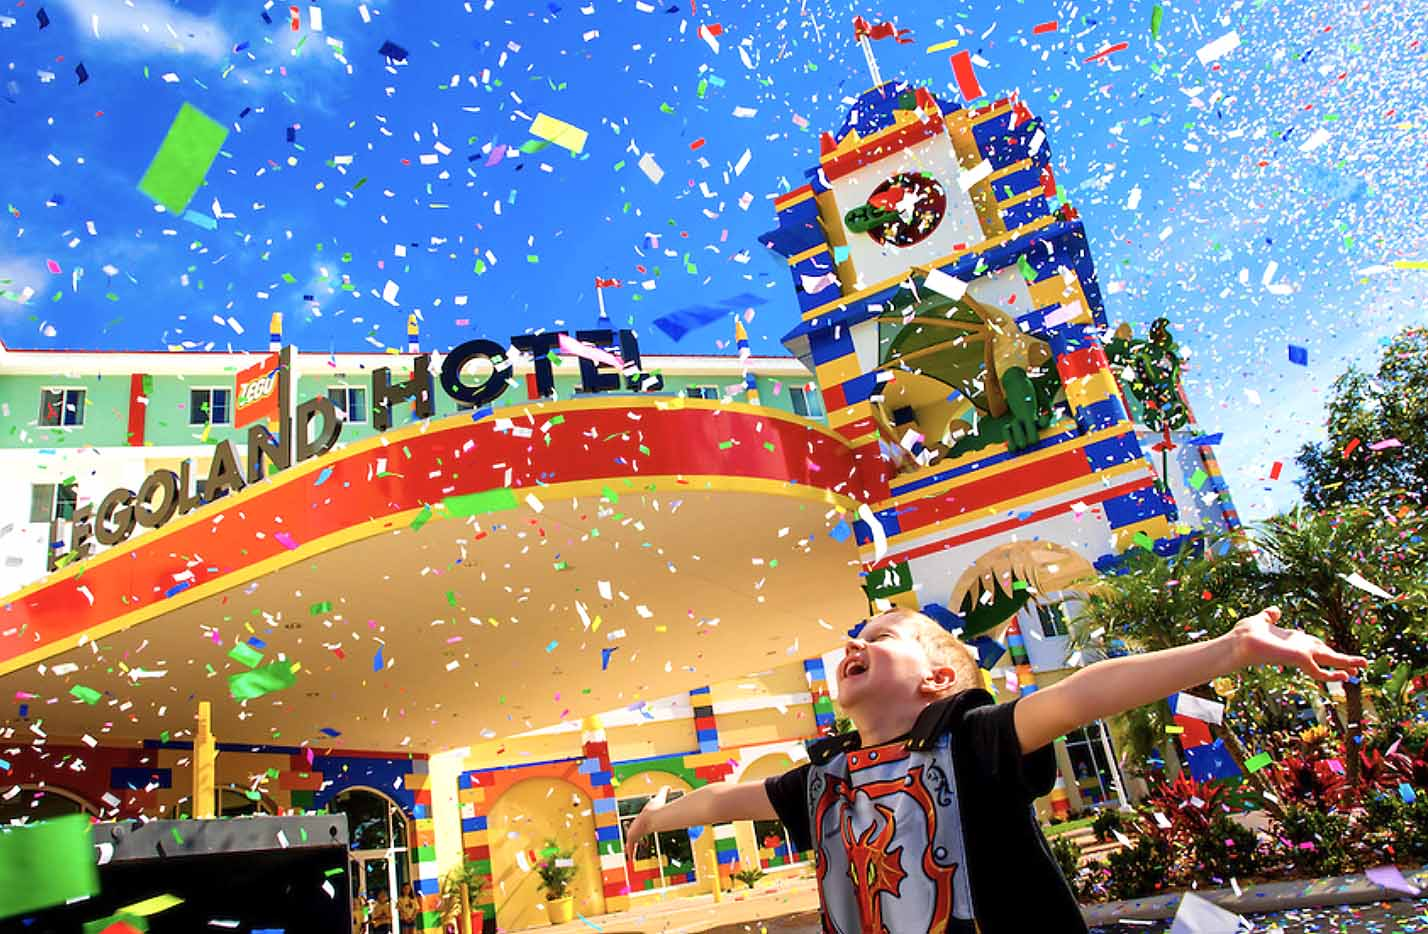 LEGOLAND HOTEL THEME AND WATERPARK – Florida